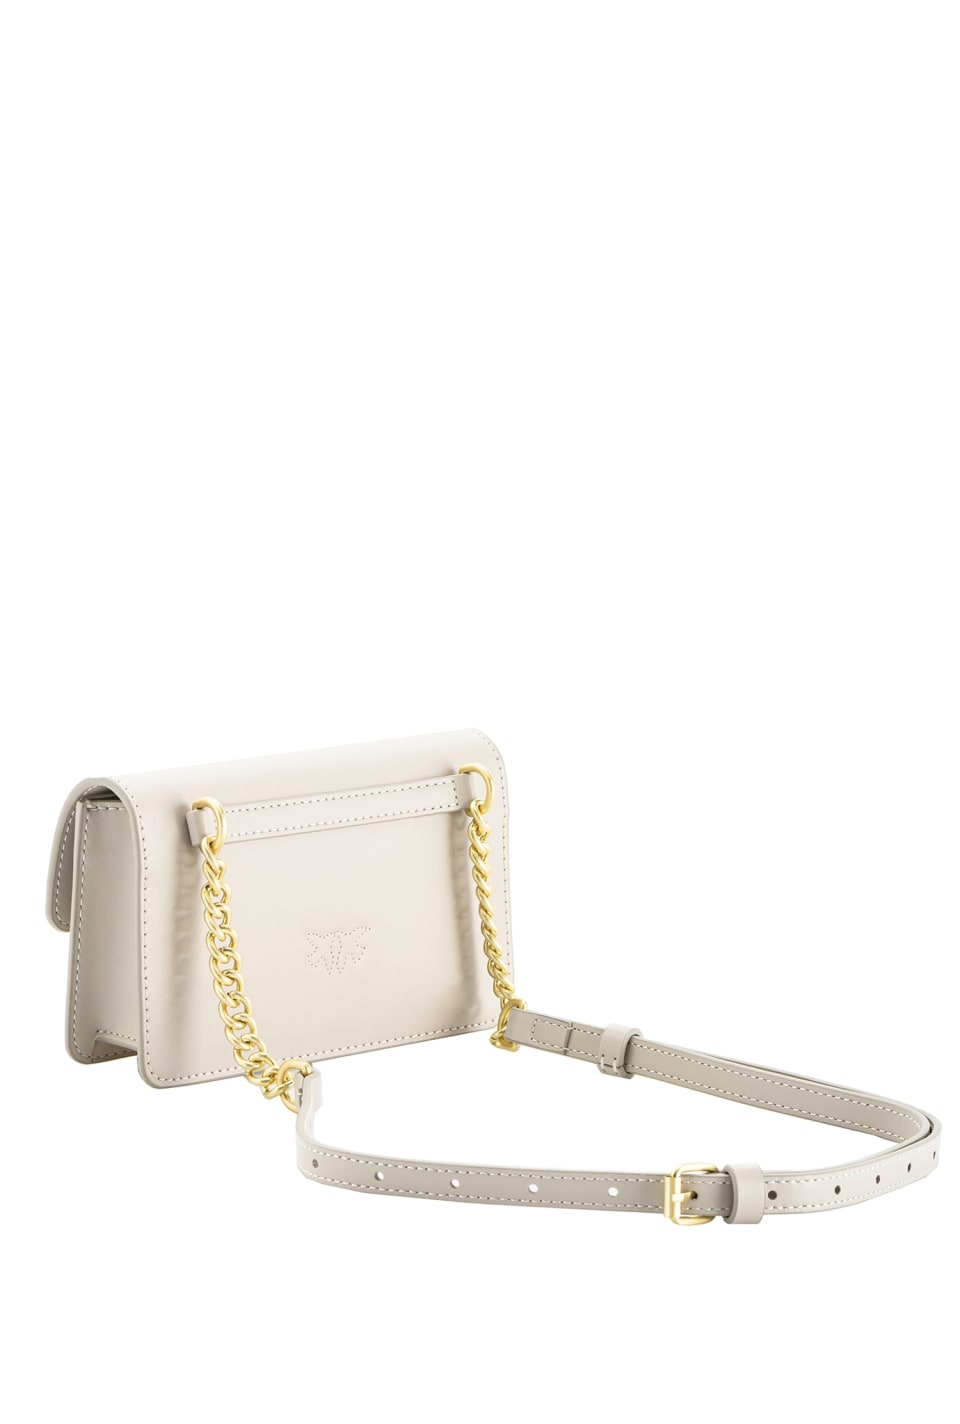 Baby Love Bag Simply en cuir